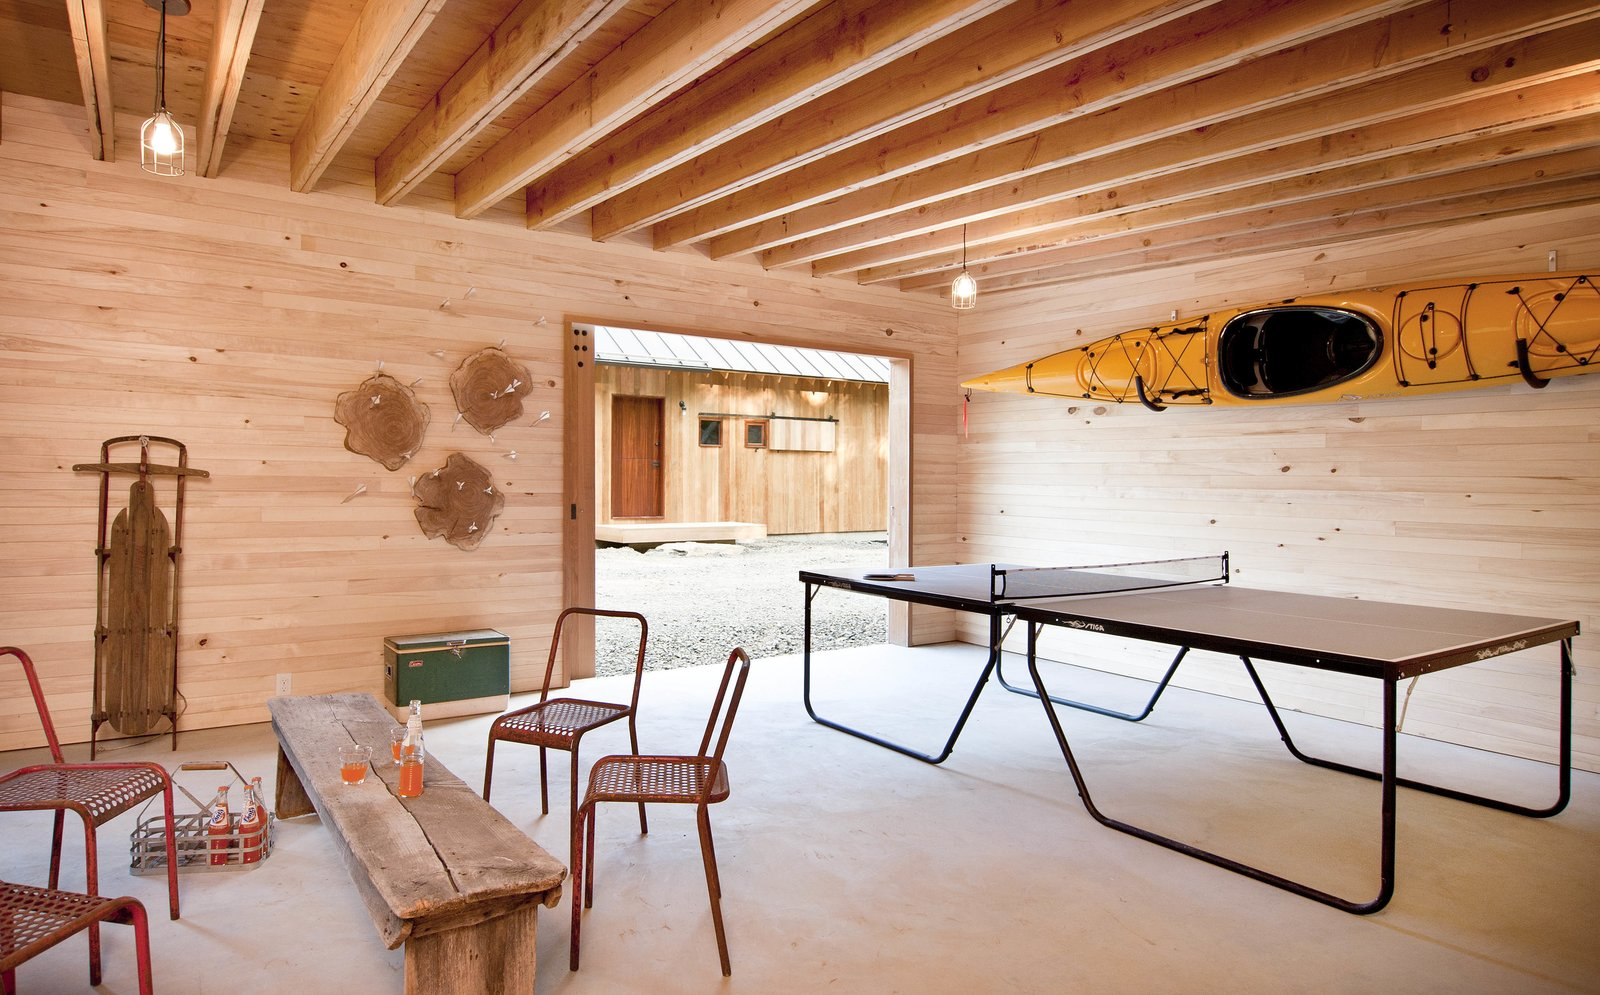 wood furniture types. Garage, Garage Conversion Room Type, And Detached Type How To Recognize Different Wood Furniture Types